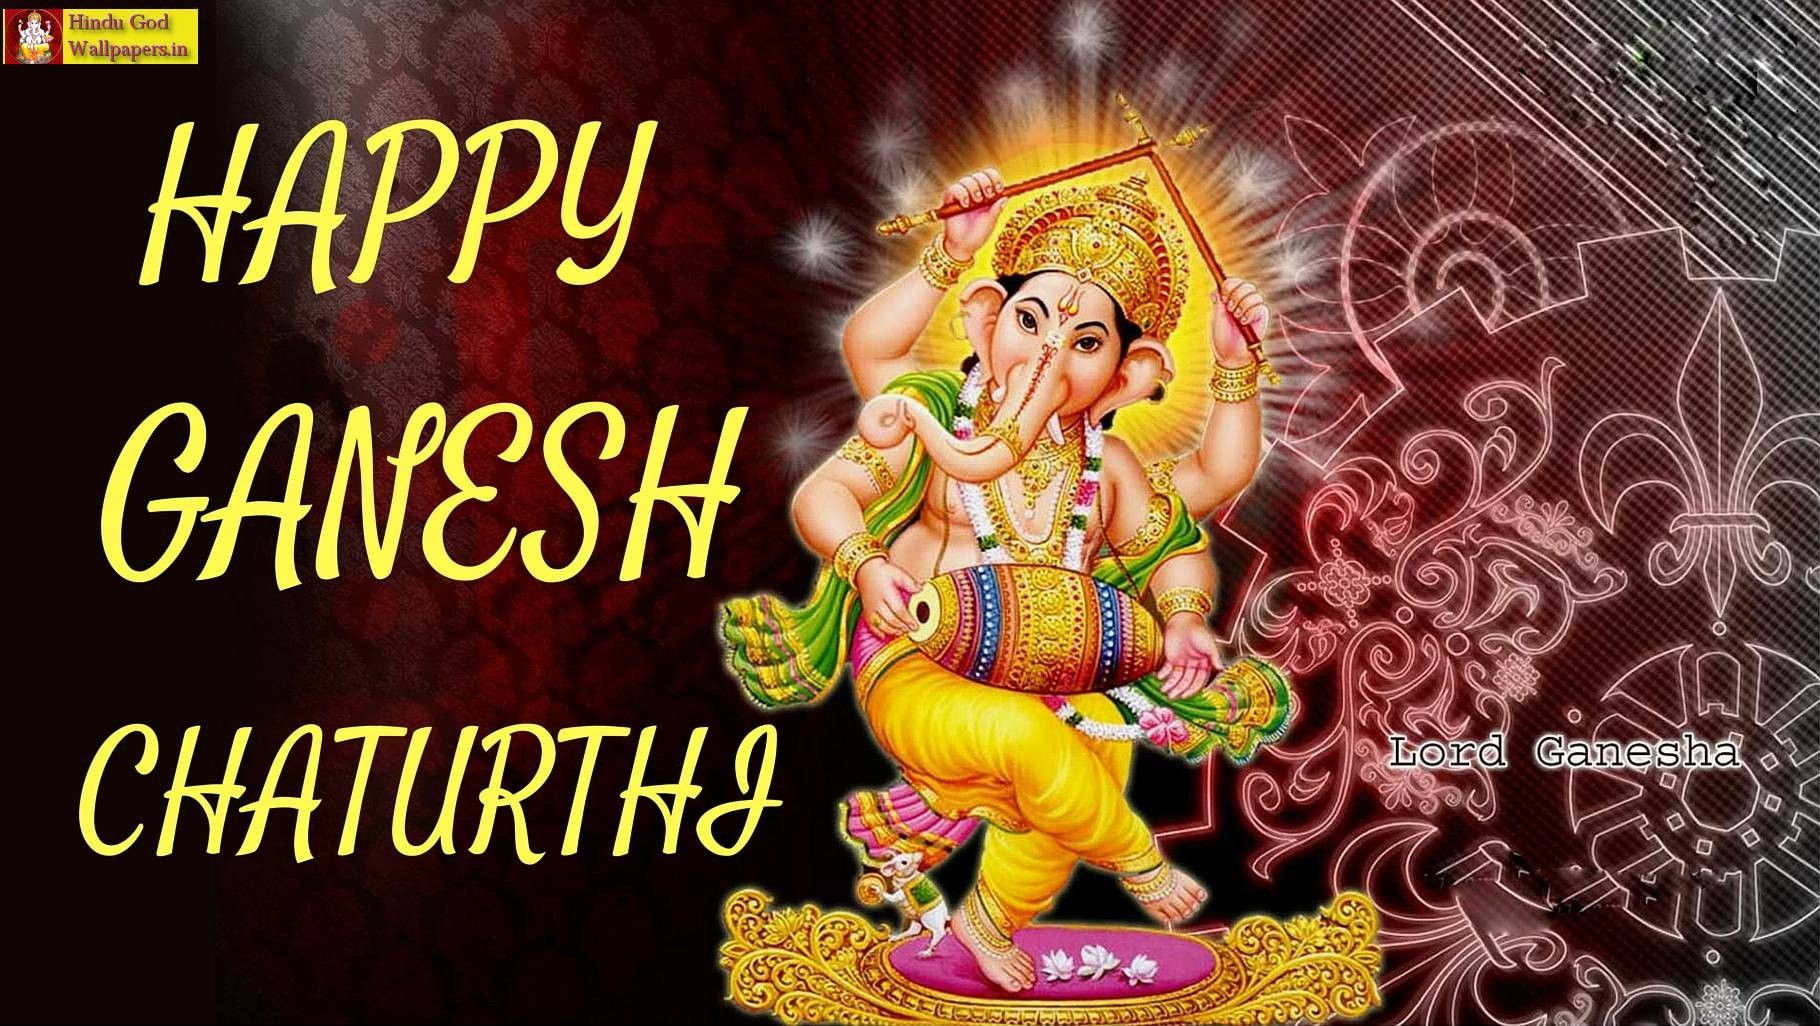 Lord Ganesha Songs Free Download